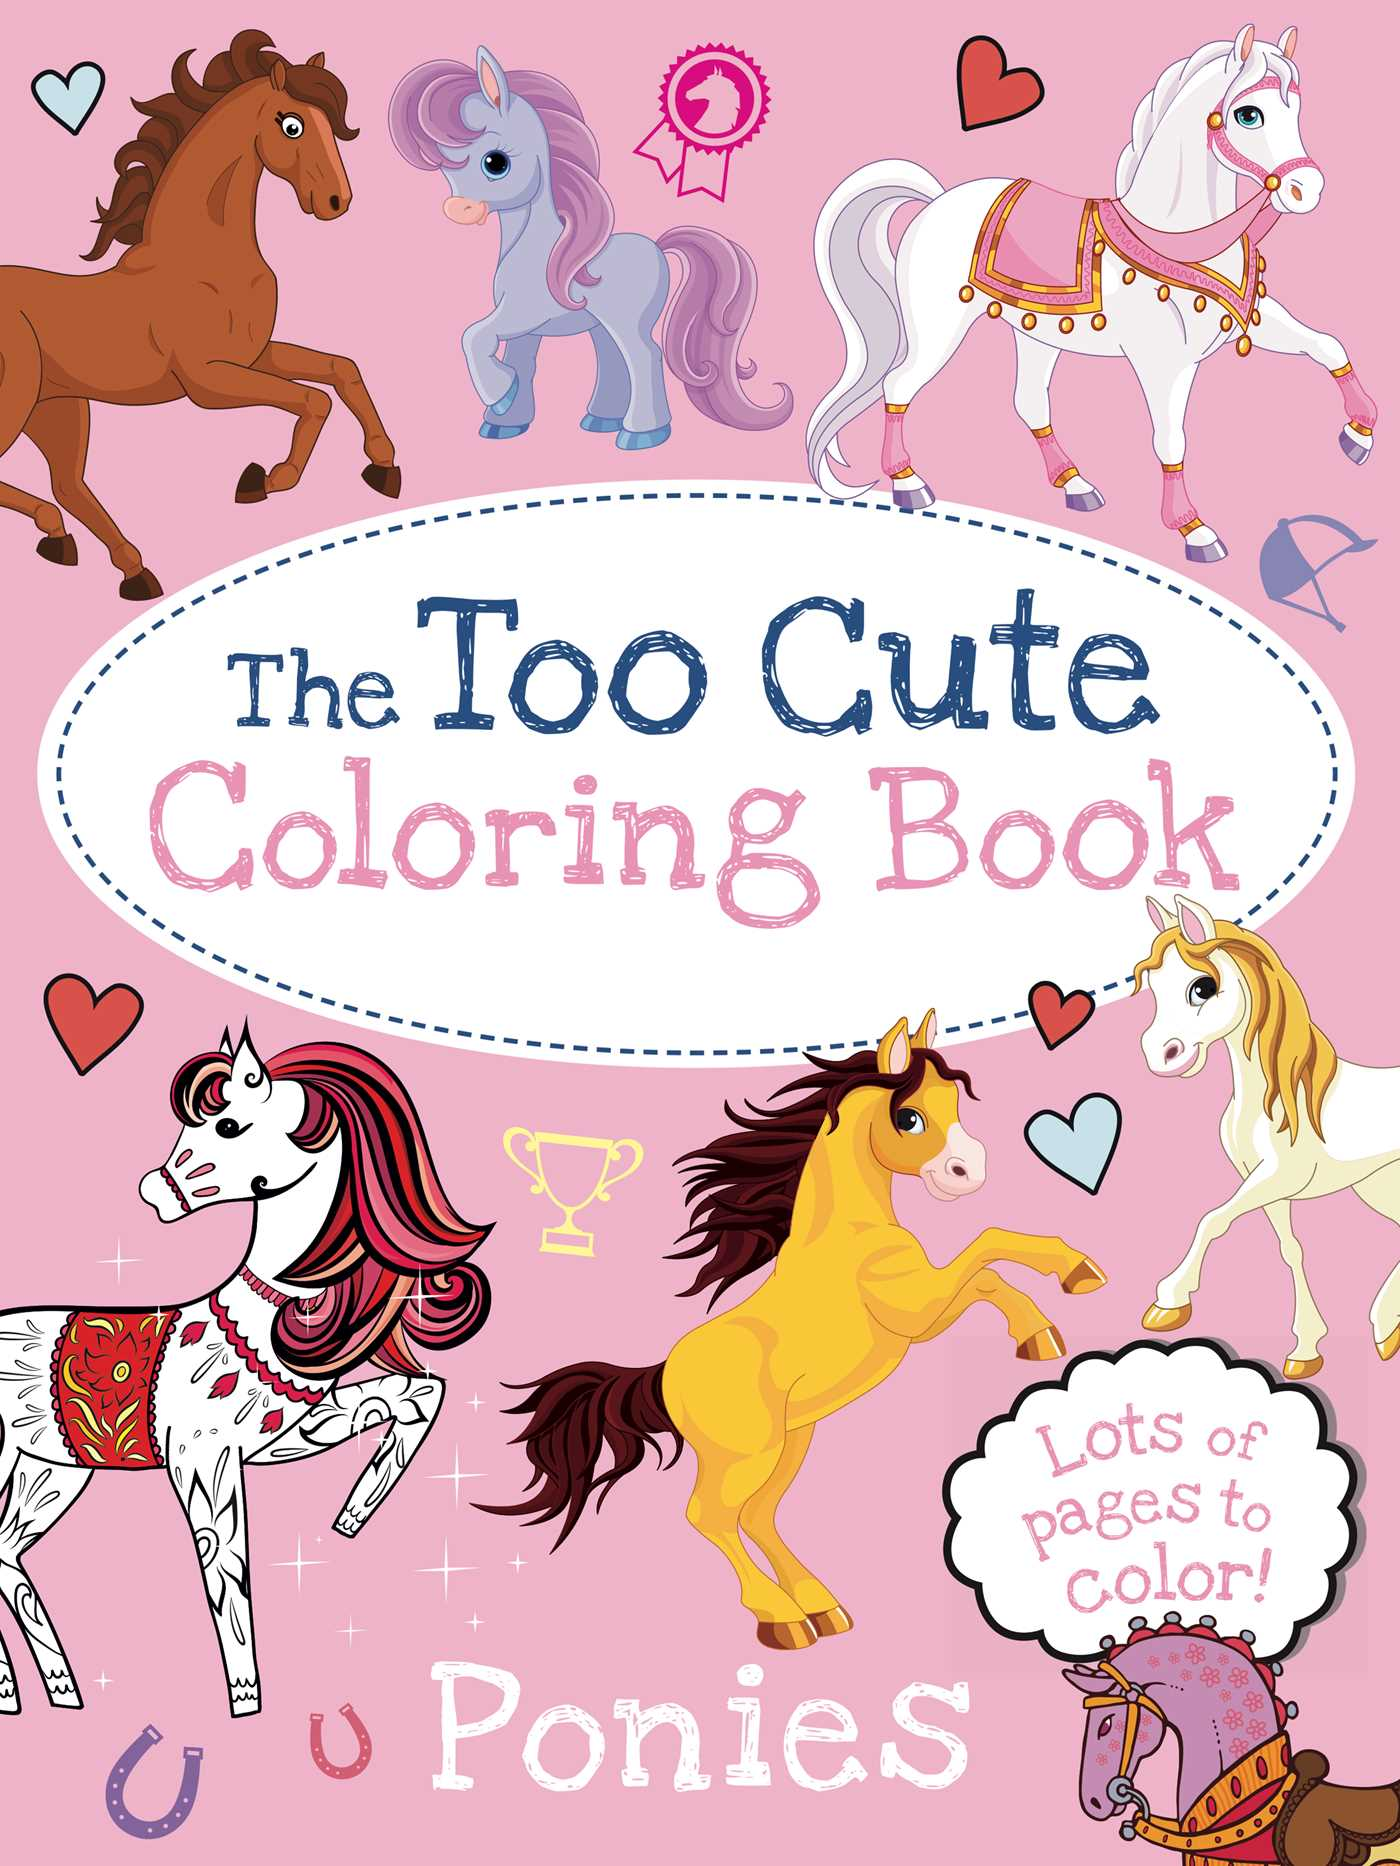 The Too Cute Coloring Book Ponies Book By Little Bee Books Little Bee Books Official Publisher Page Simon Schuster